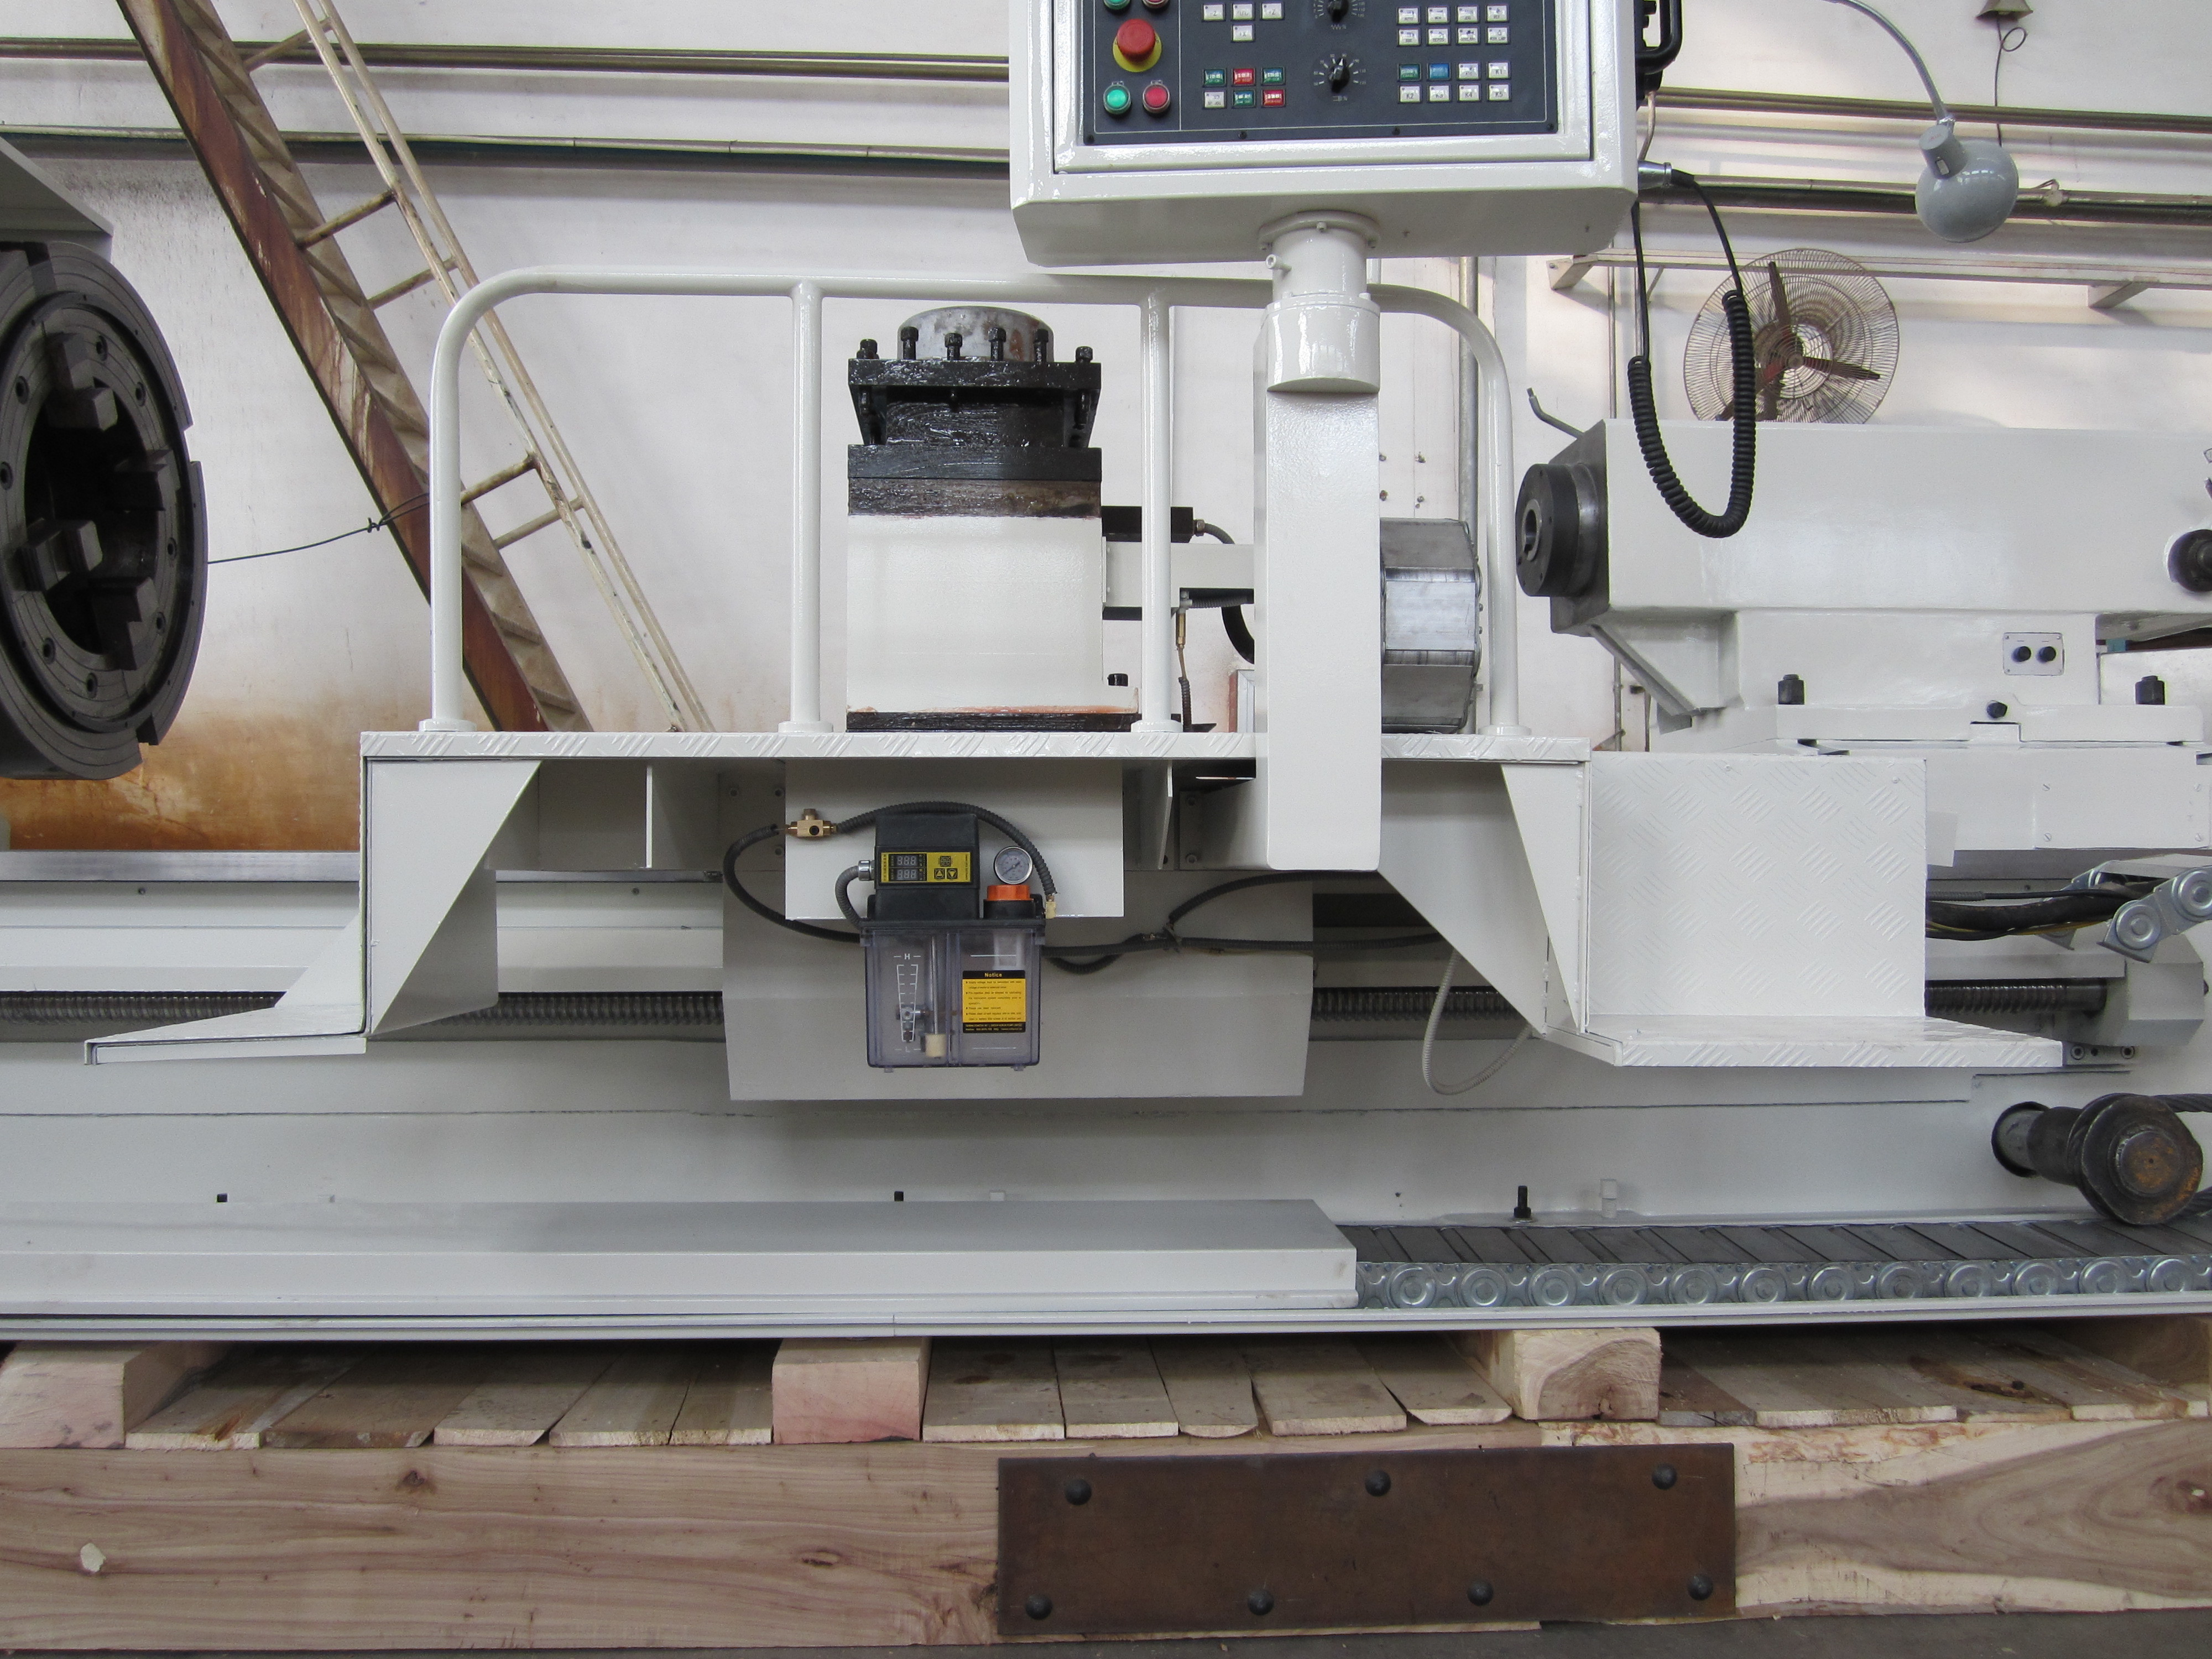 Cnc lathe for pipe threading